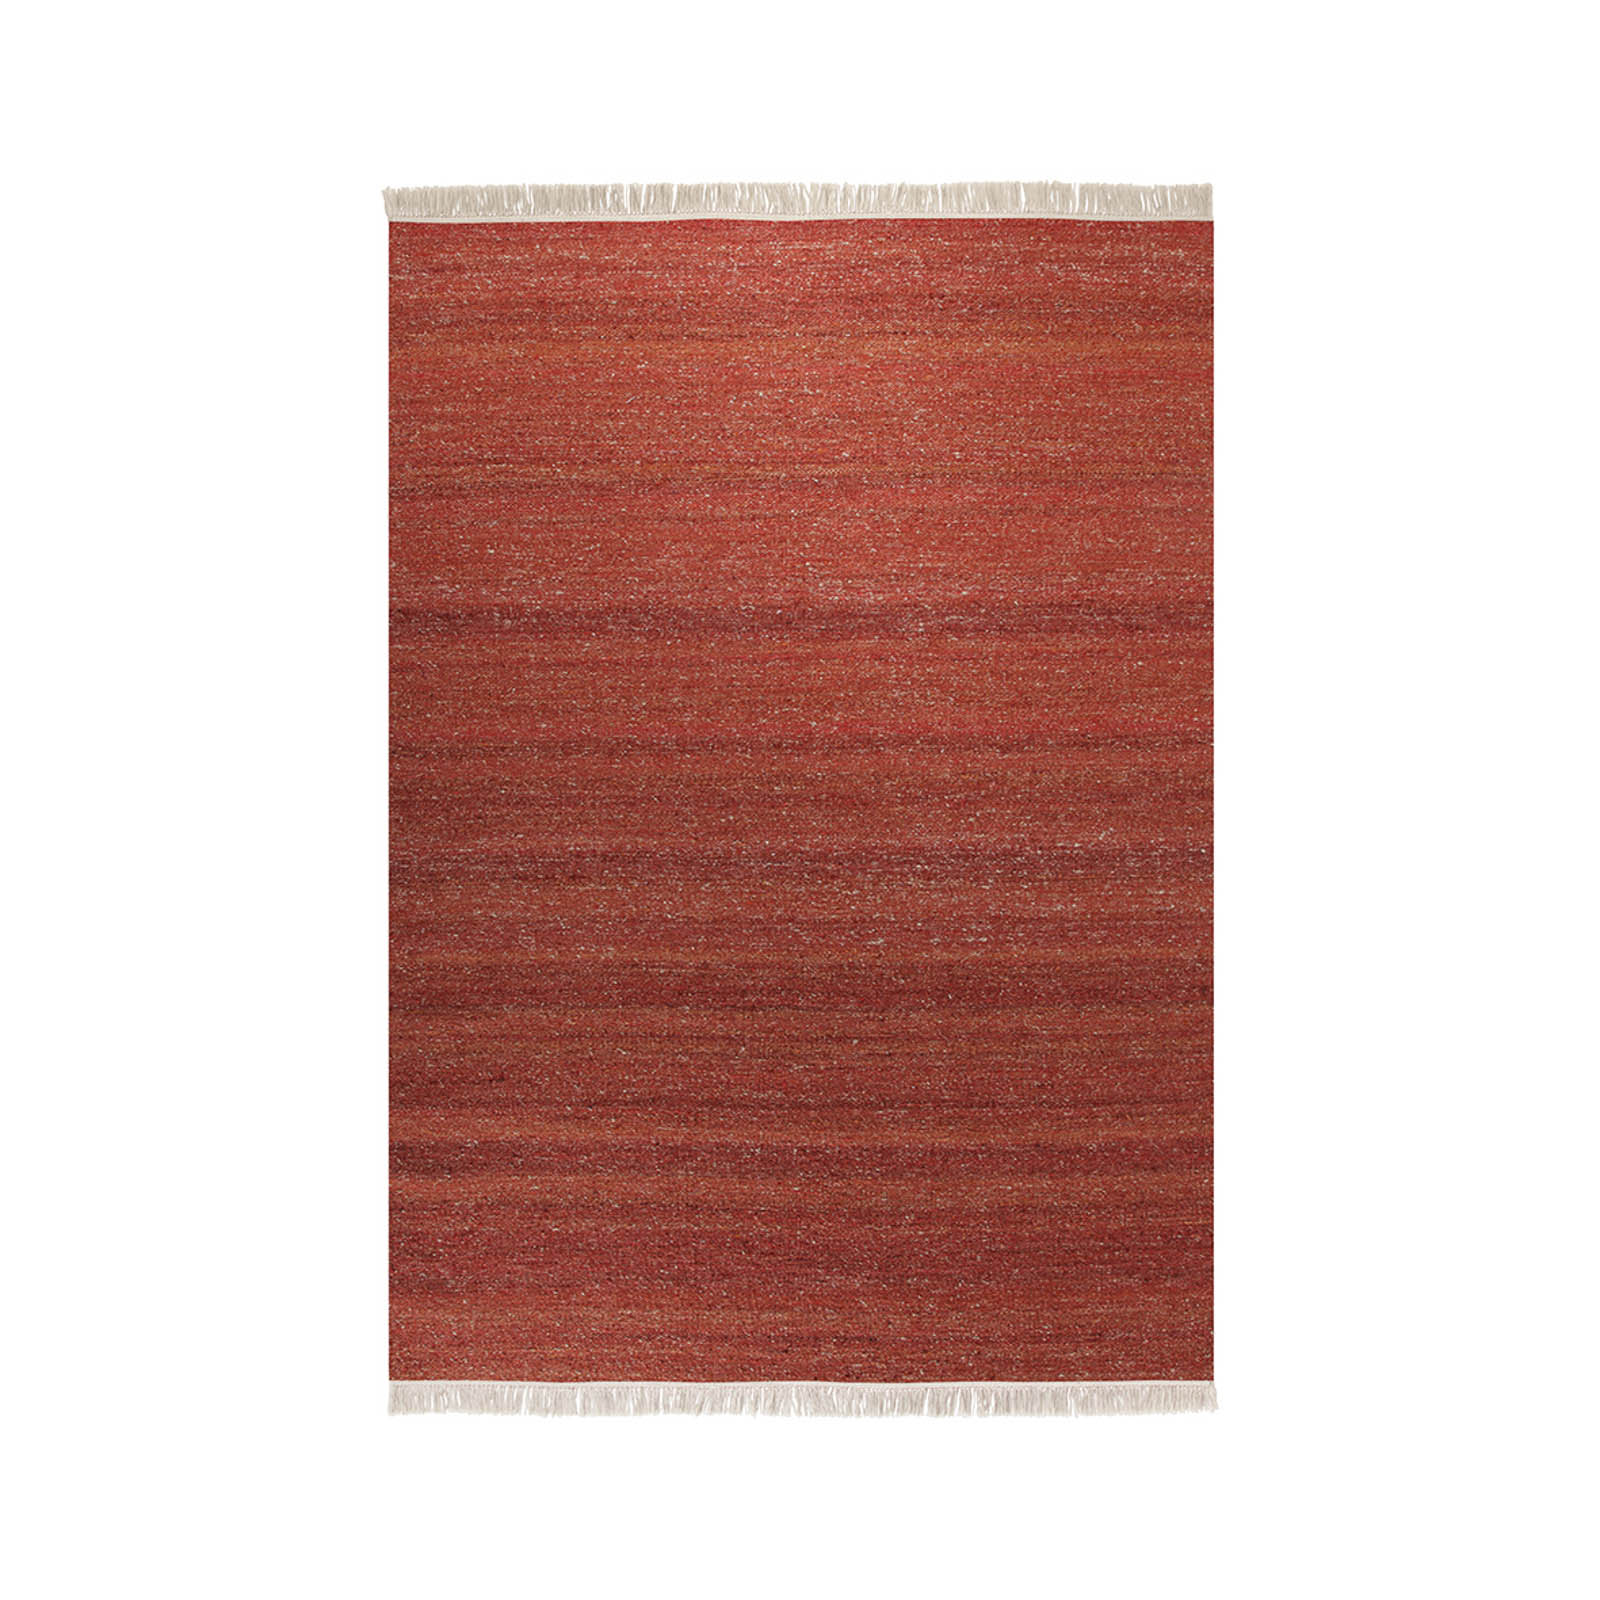 Esprit Blurred Rugs 7015 03 Red